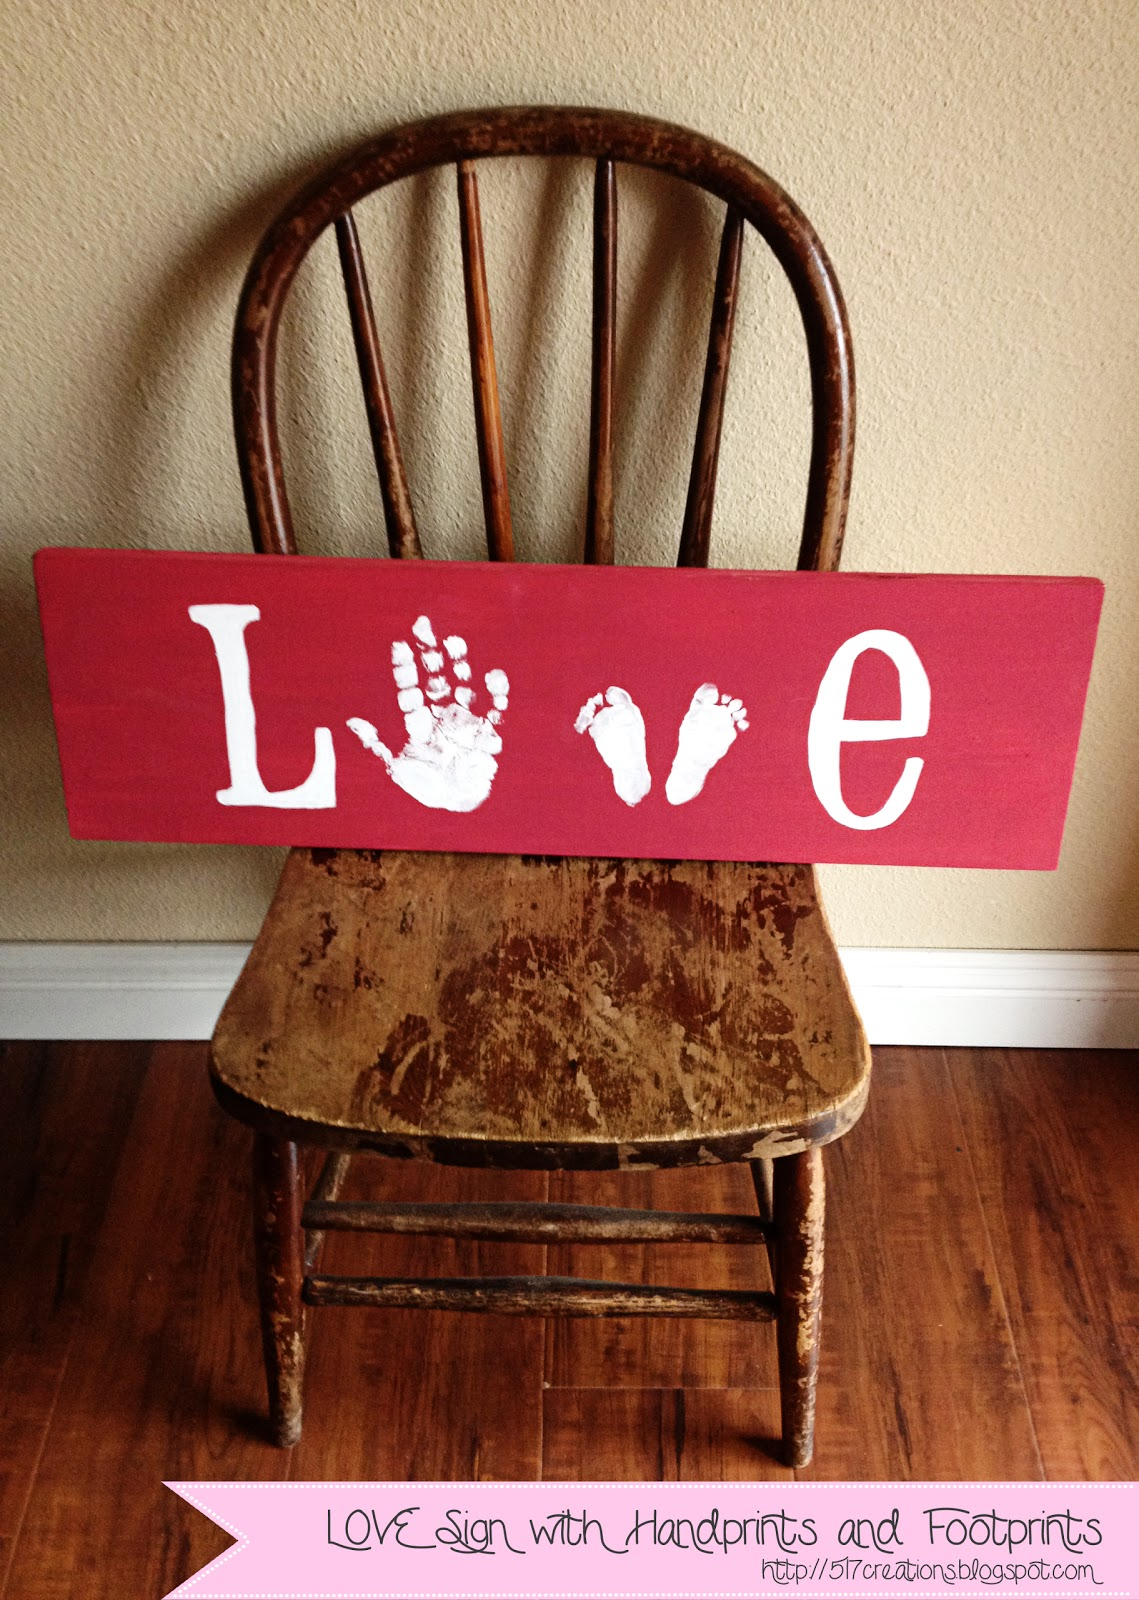 517 creations diy love hand and footprints for Love sign